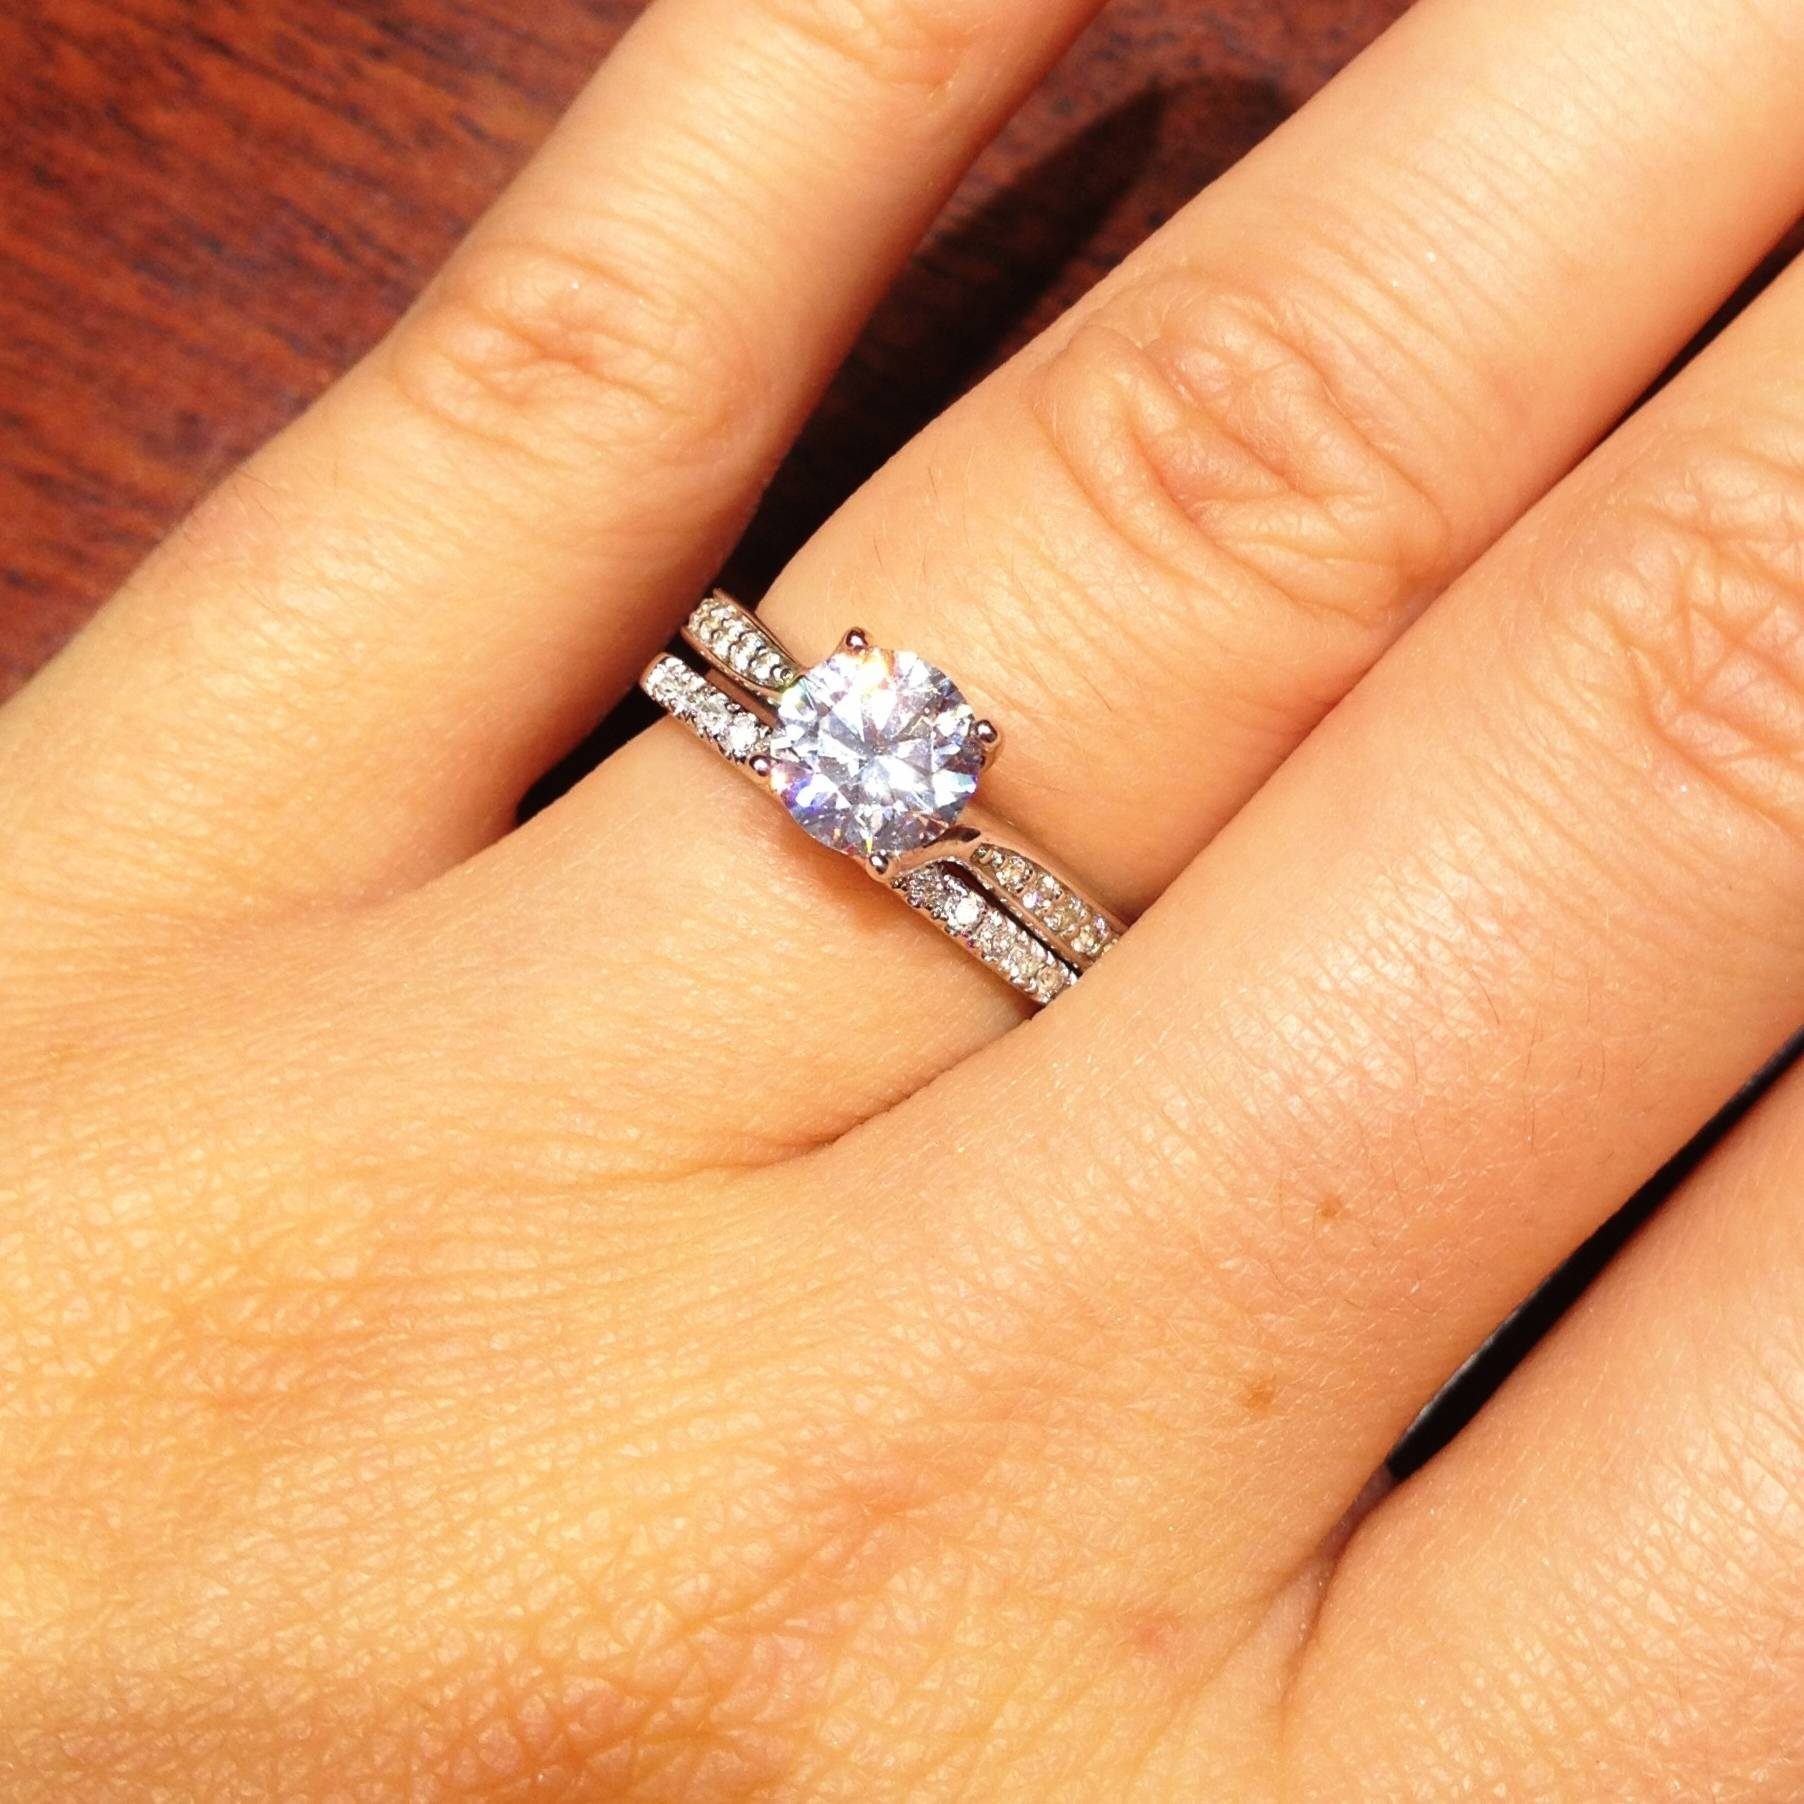 Photo Gallery of Skinny Diamond Wedding Bands Viewing 13 of 15 Photos